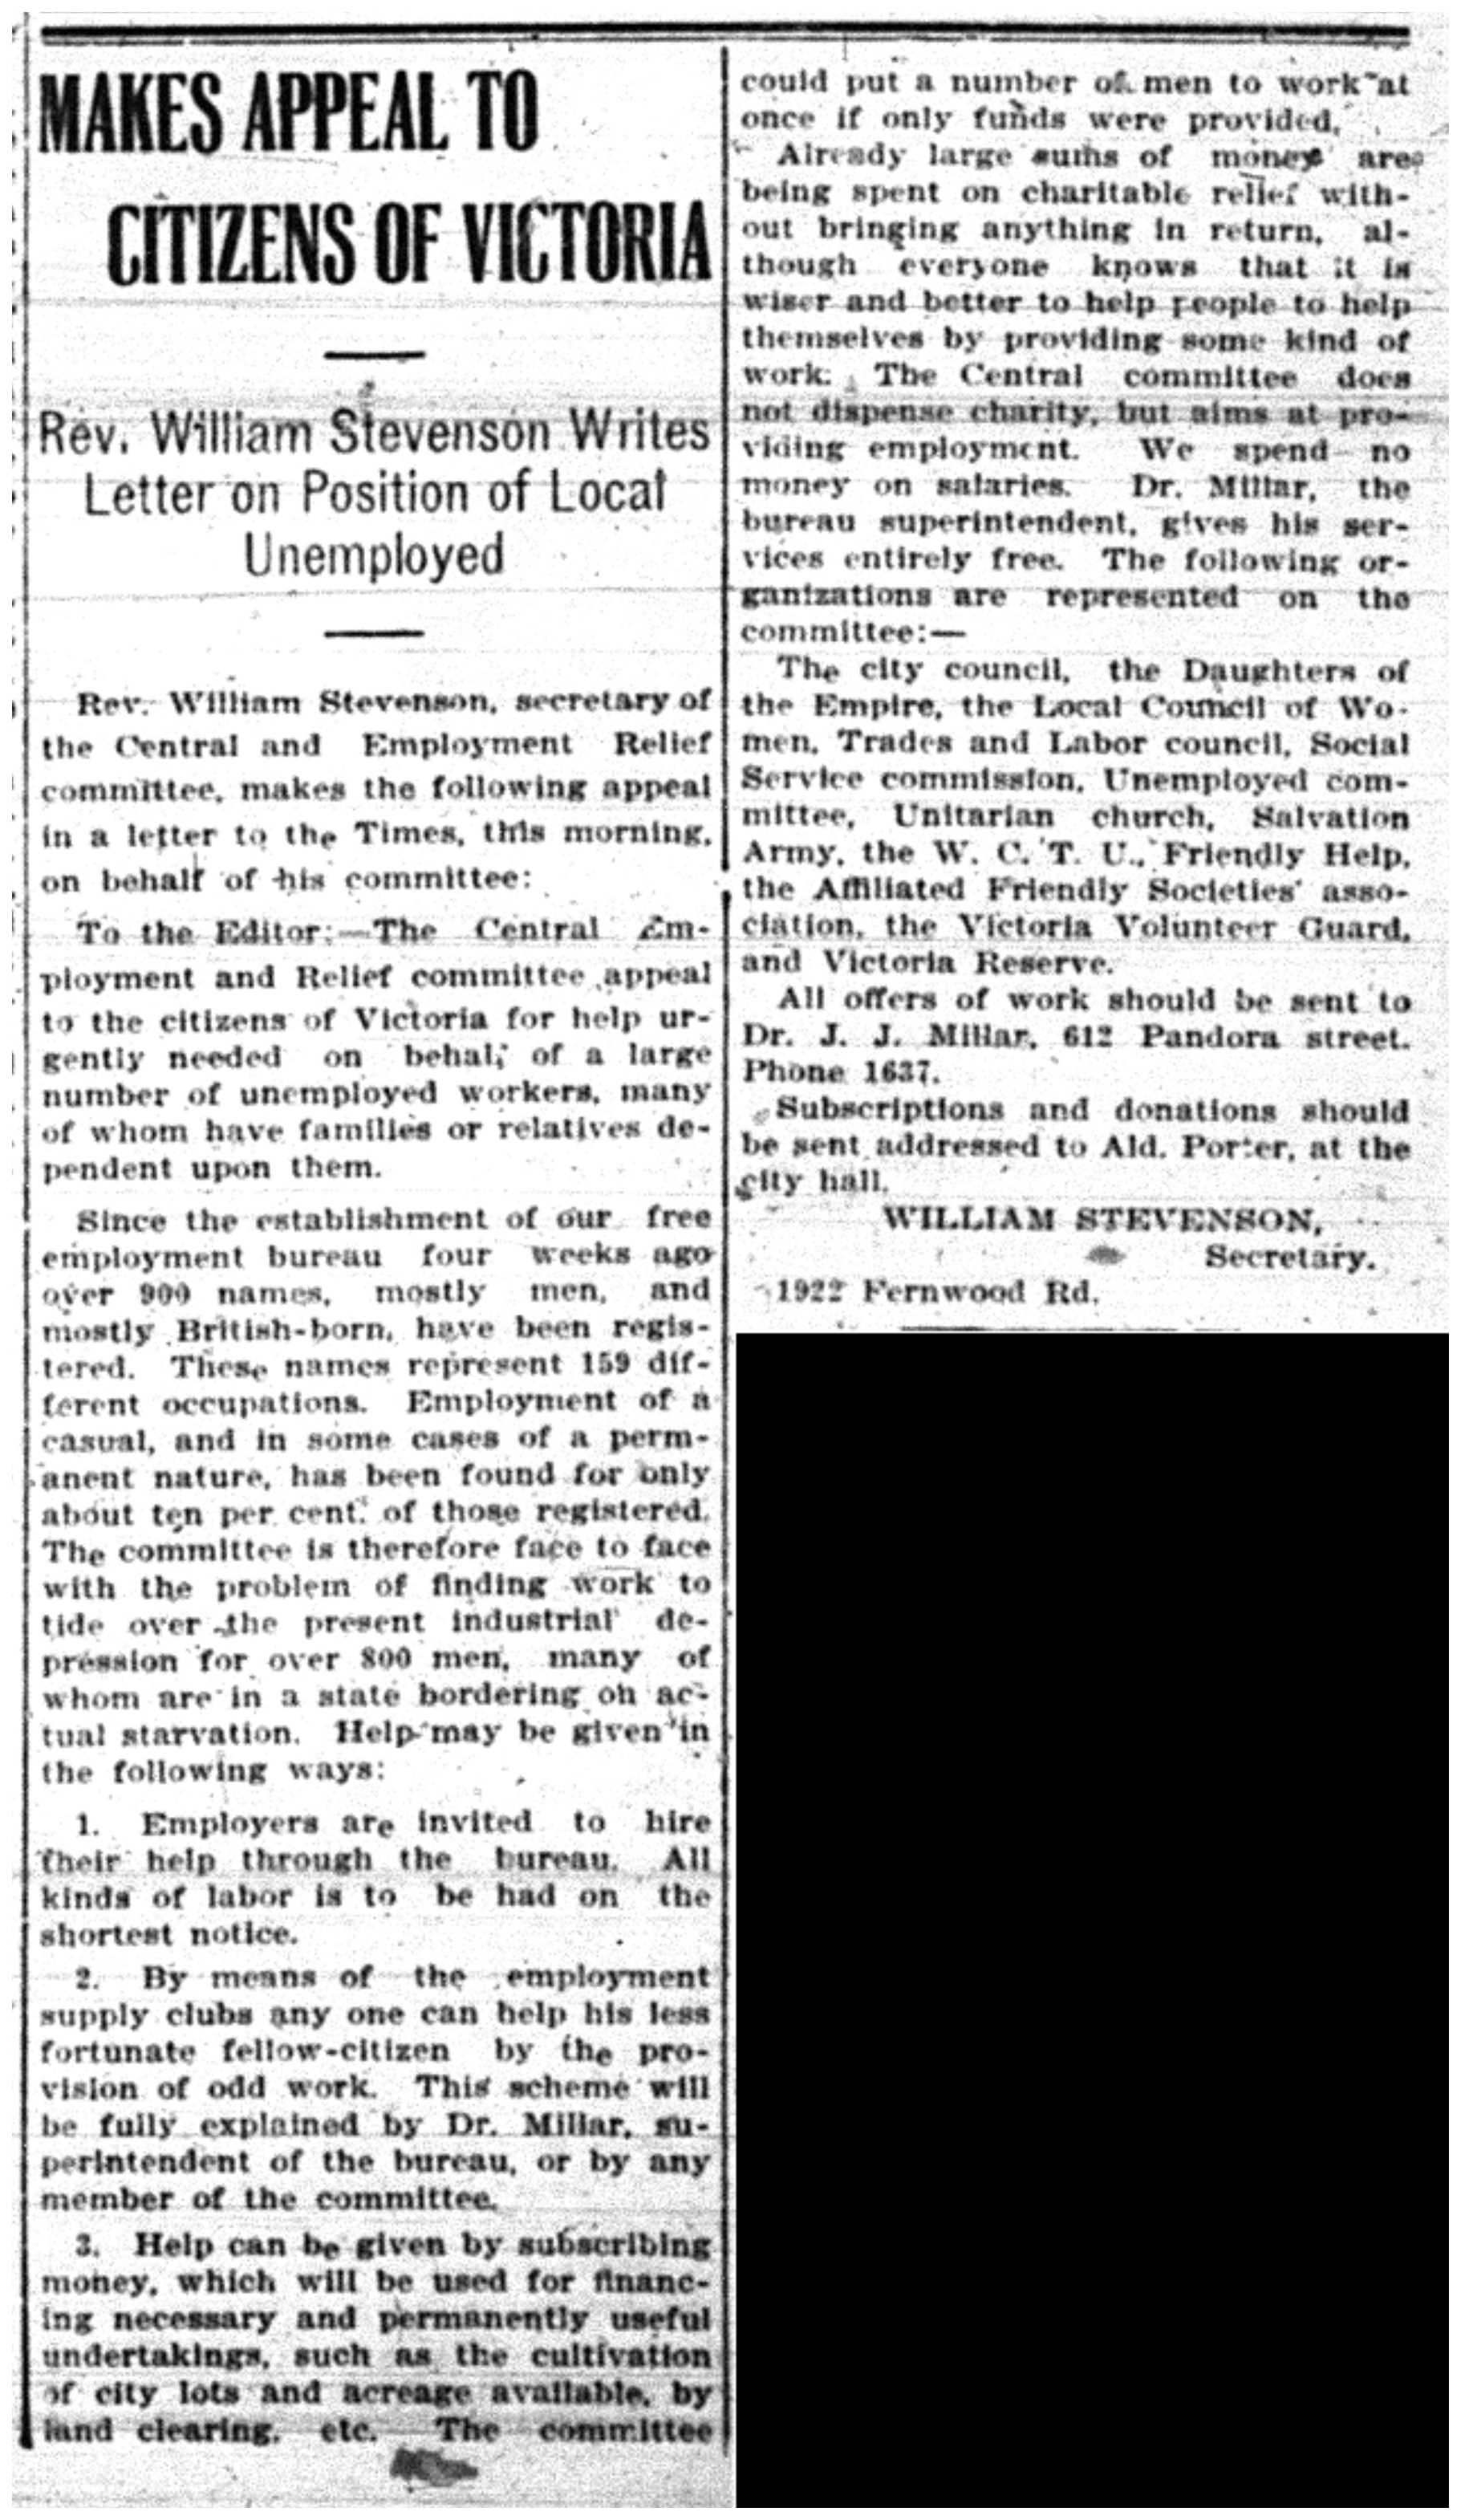 Rev. Stevenson's Unemployment Plea